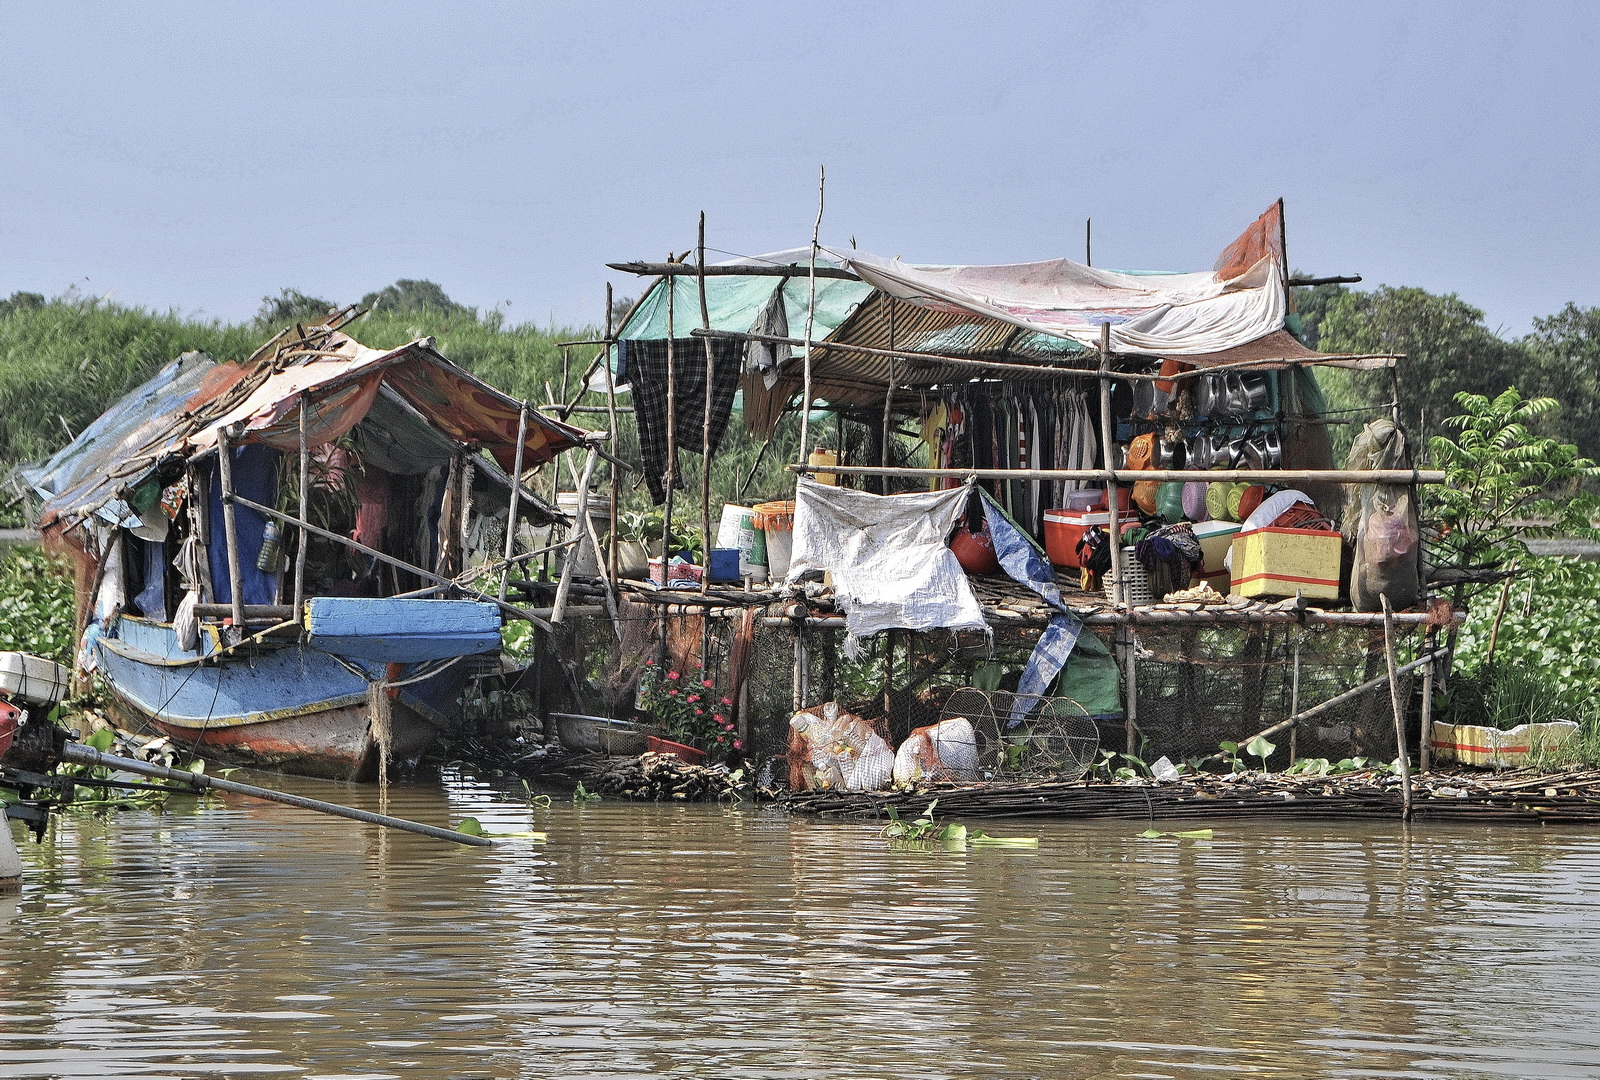 Temporary shelters constructed by houseboat residents